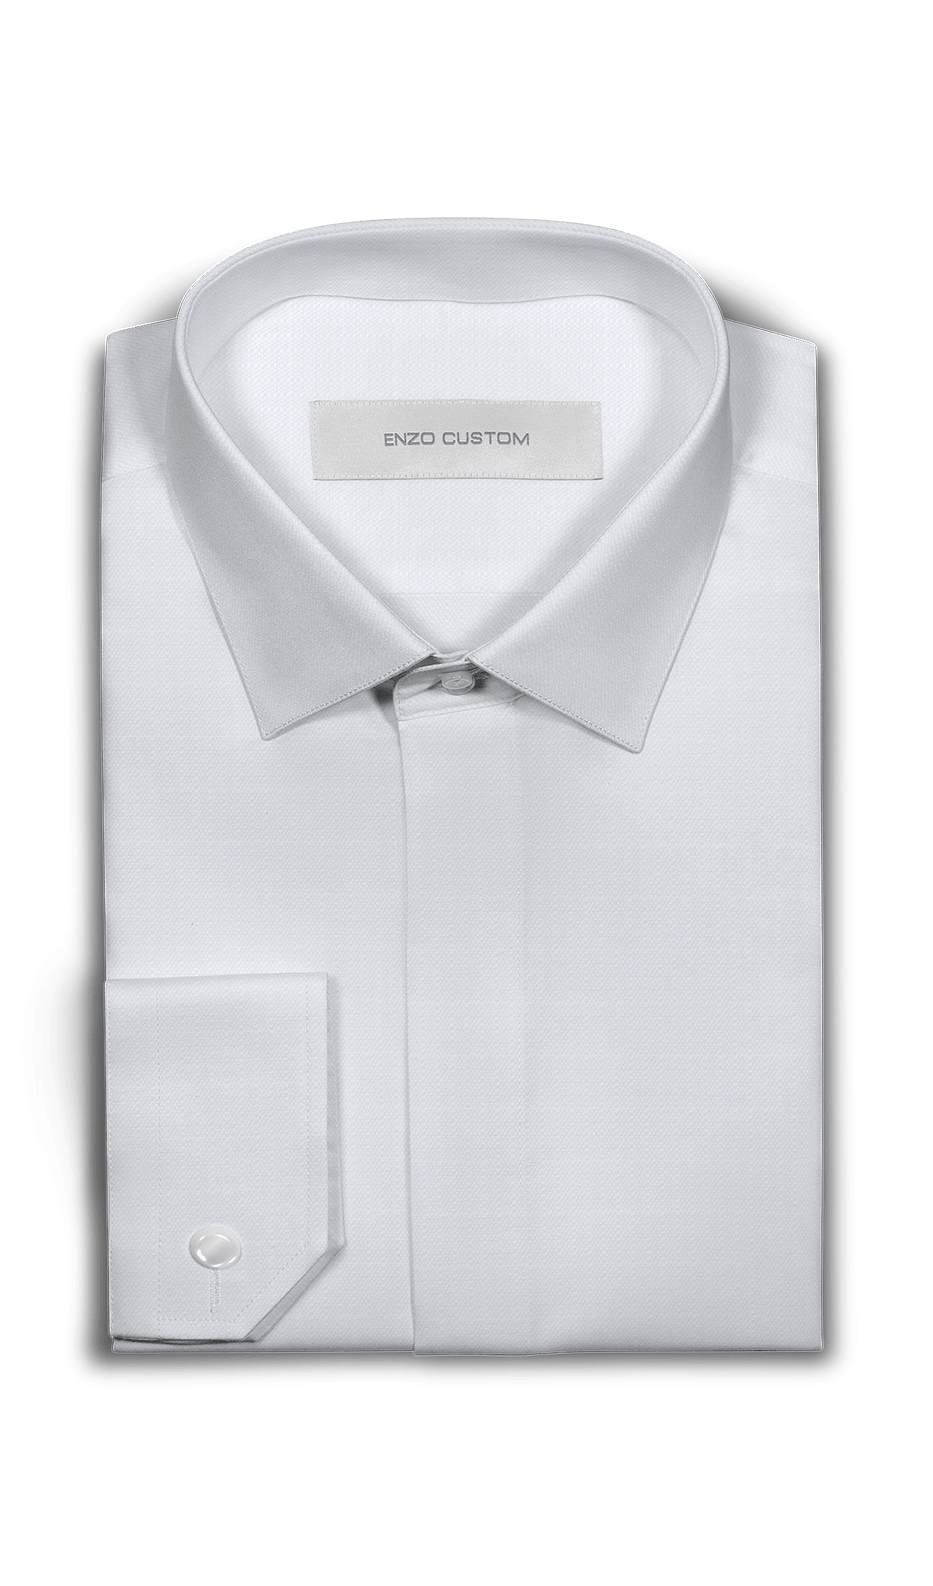 Ermenegildo Zegna Shirt White Textured Dress Shirt